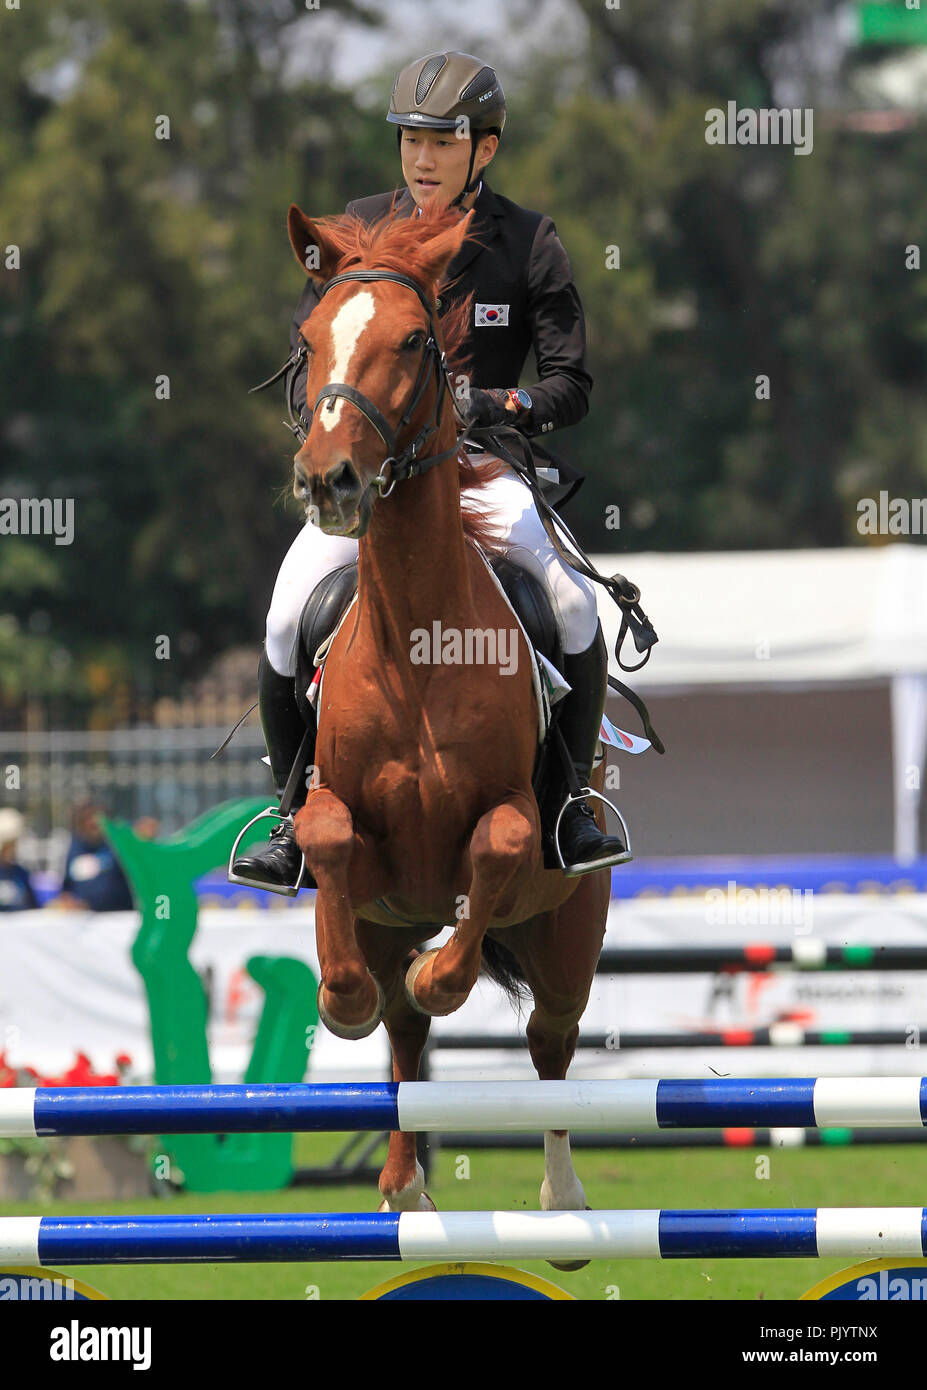 The Korean Changwan Seo competes in the mixed relay equestrian jump event held in the framework of the Modern Pentathlon World Championship in Mexico City, Mexico, 09 September 2018. EFE/Mario Guzman - Stock Image